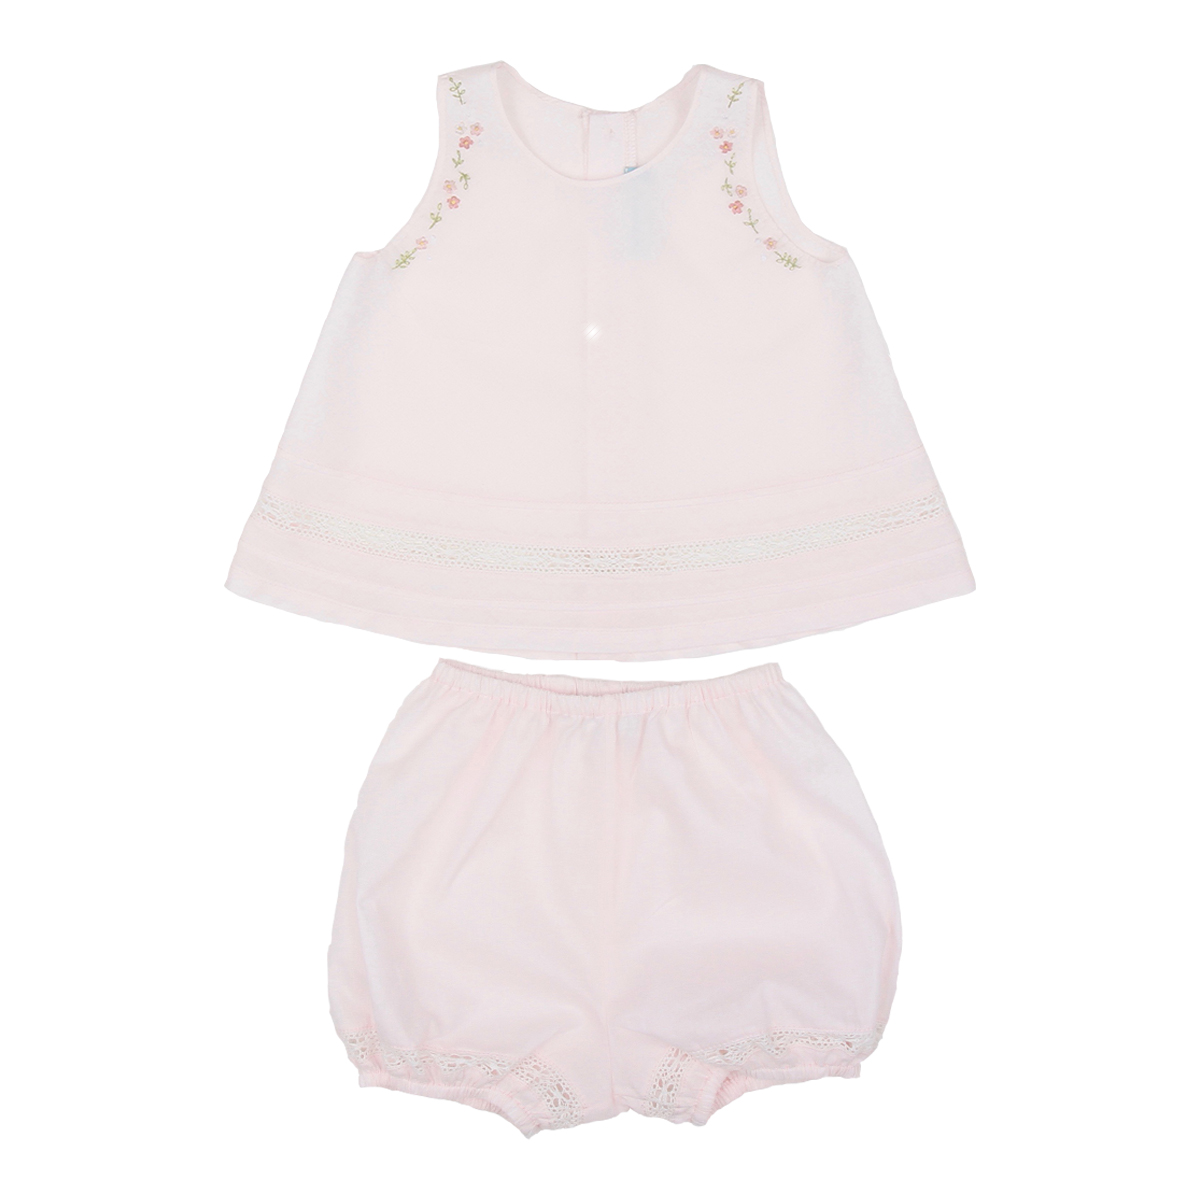 Poeme + Poesie Sleeveless Top with Flower Details and Bloomers